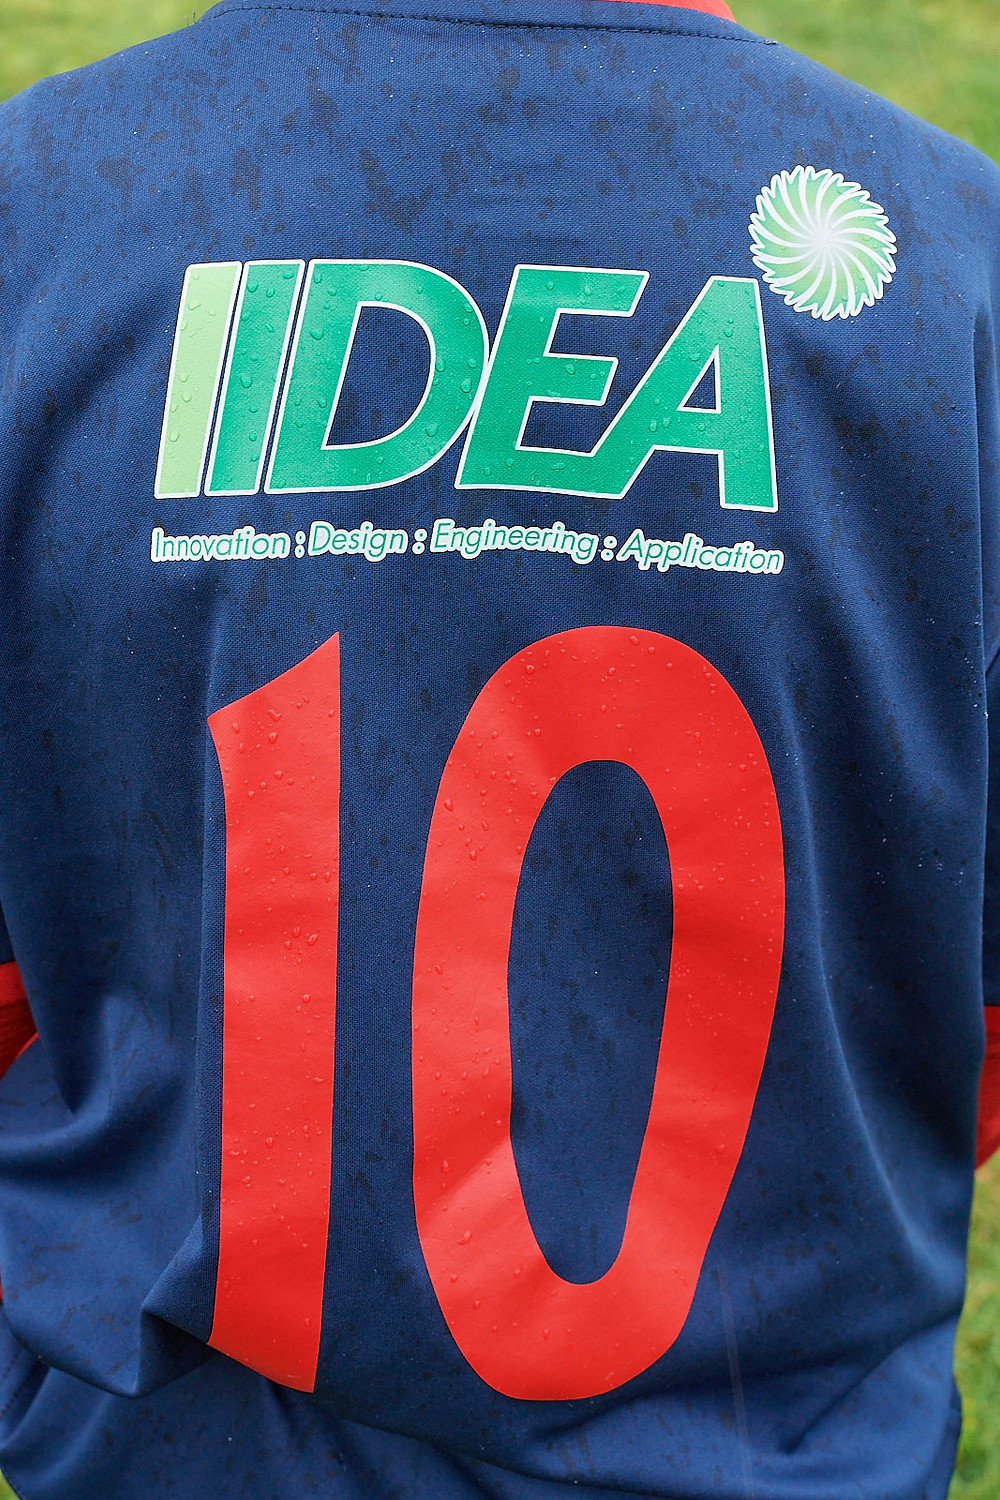 IIDEA logo in prominent position across the back of the shirt